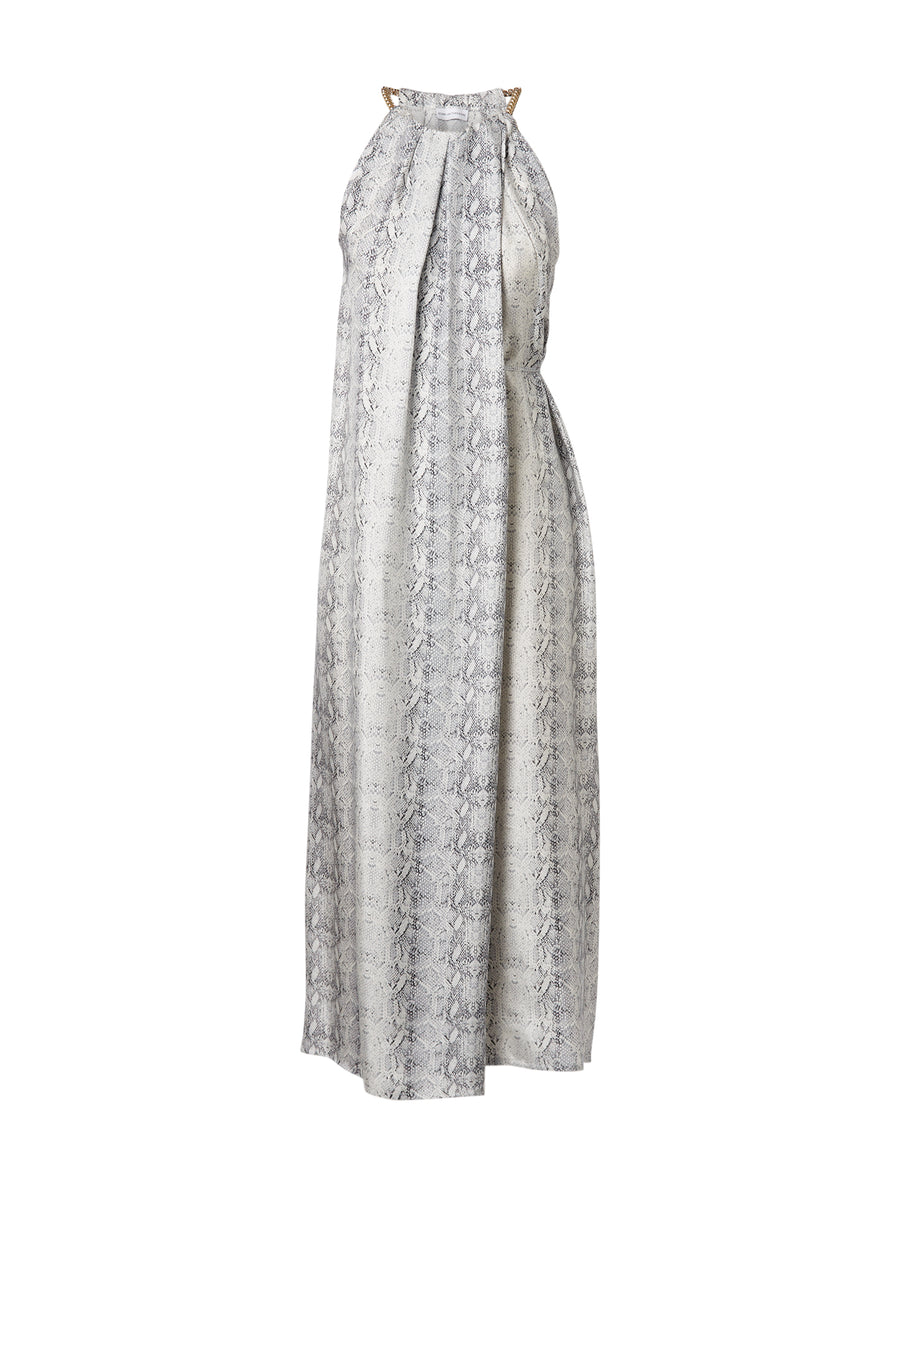 Silk Reptile Print Dress has a halter with chain detail around the neck. Drape detail throughout with side tie, color white